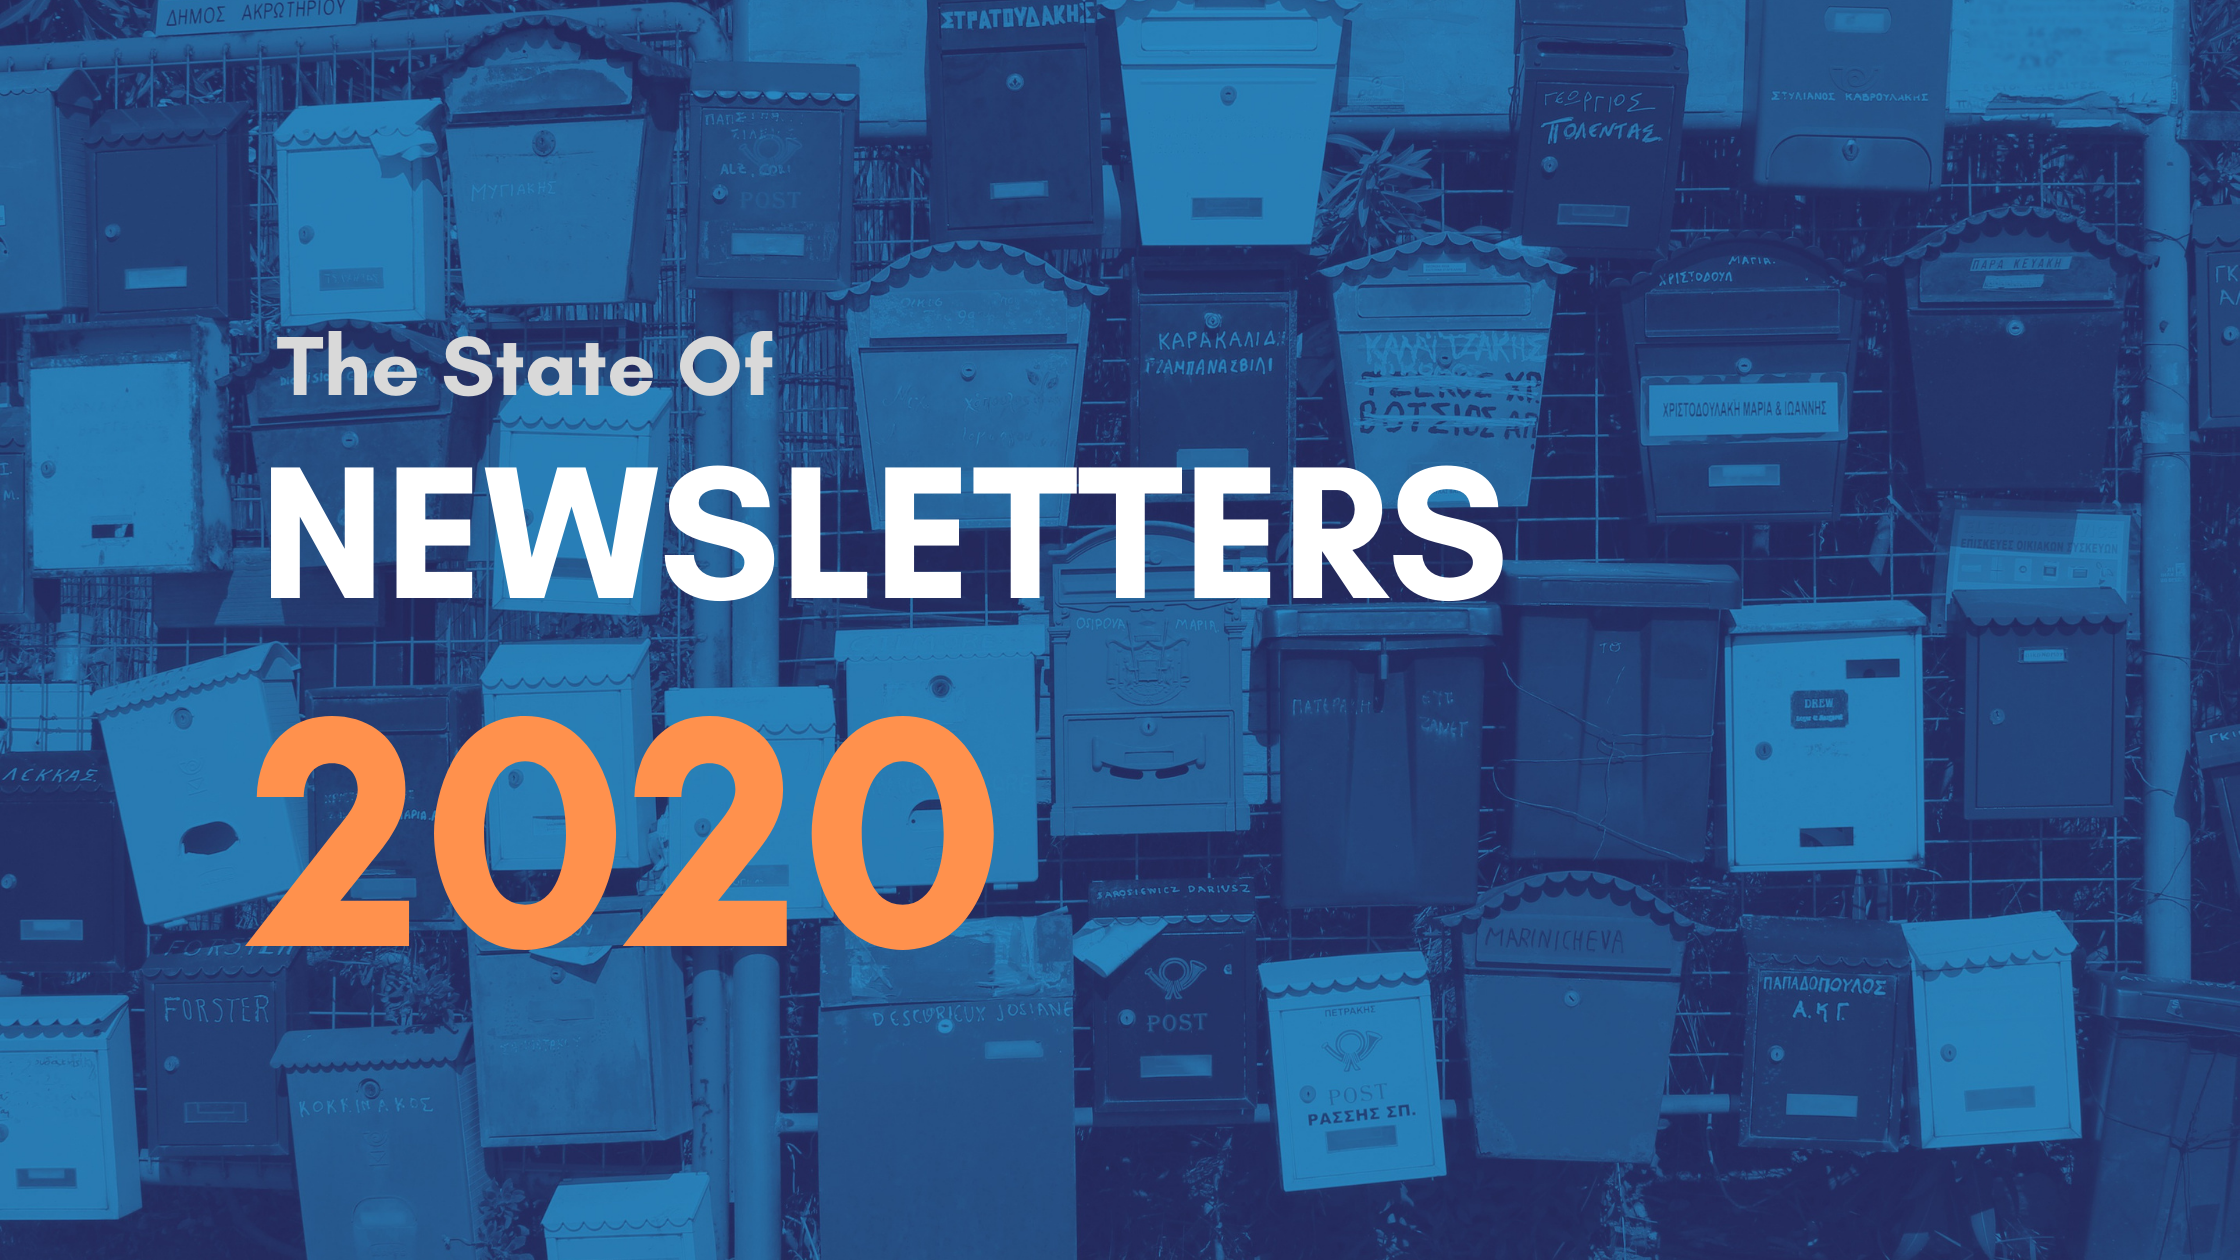 The State of Newsletters In 2020 image